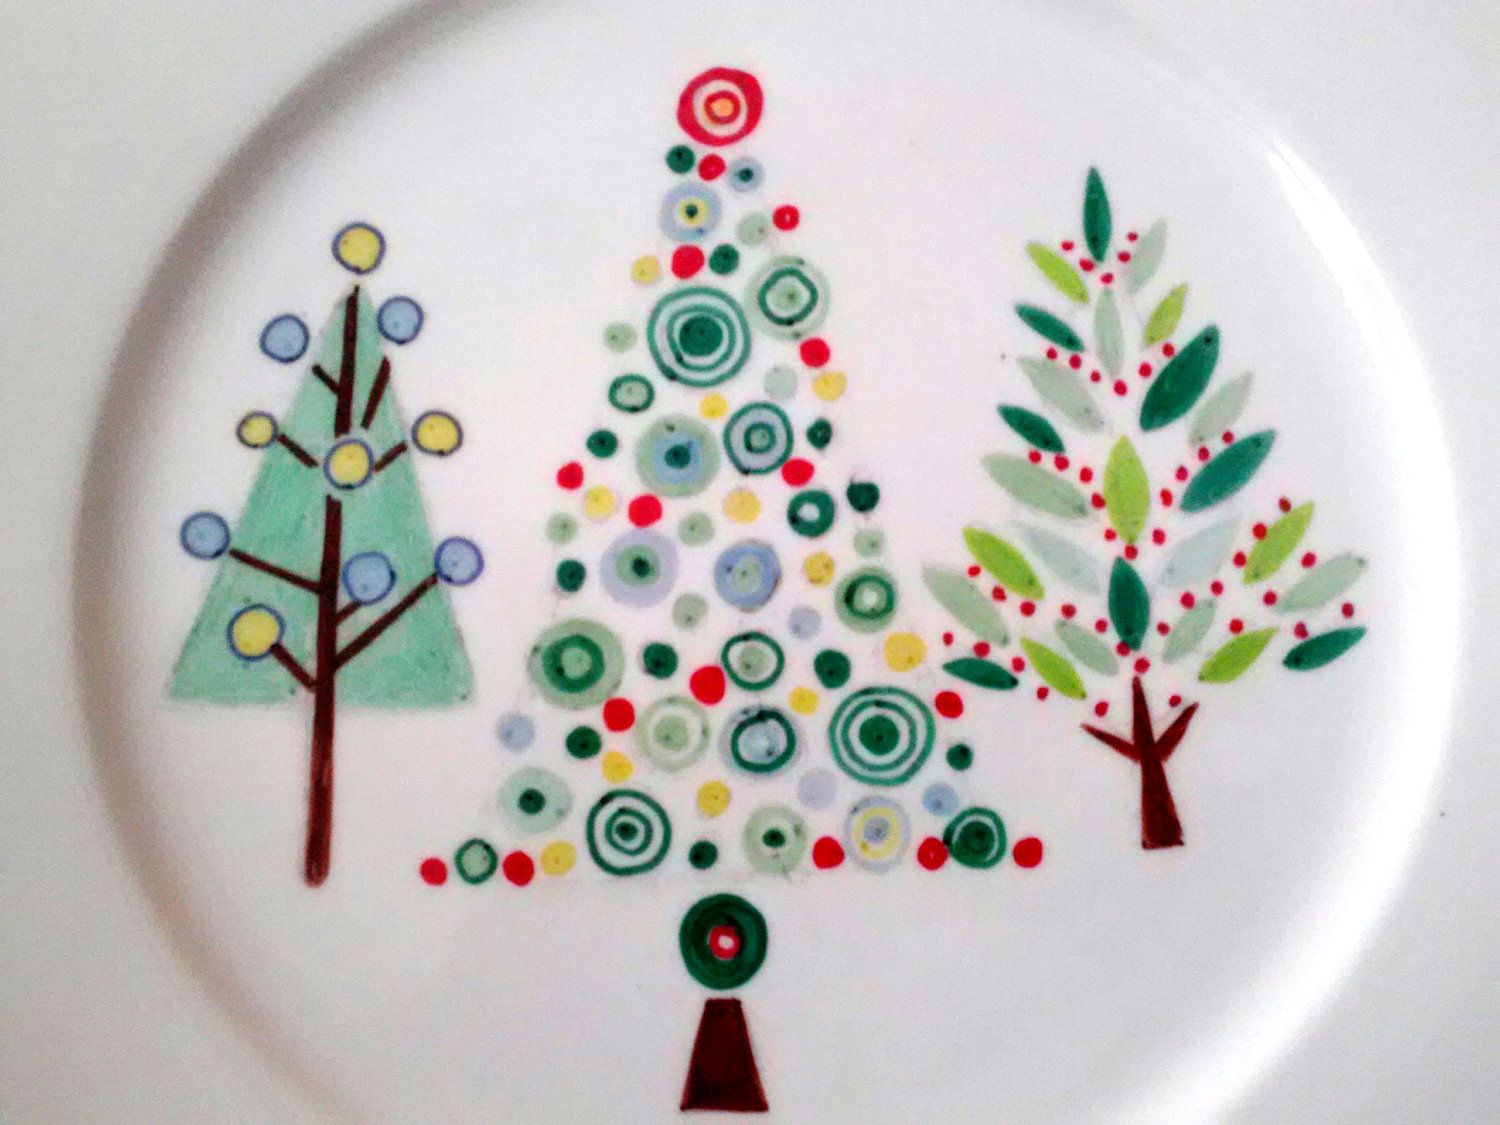 DIY - Retro Christmas Tree plate Decorative purposes only. $20.00 via Etsy. & DIY - Retro Christmas Tree plate Decorative purposes only. $20.00 ...